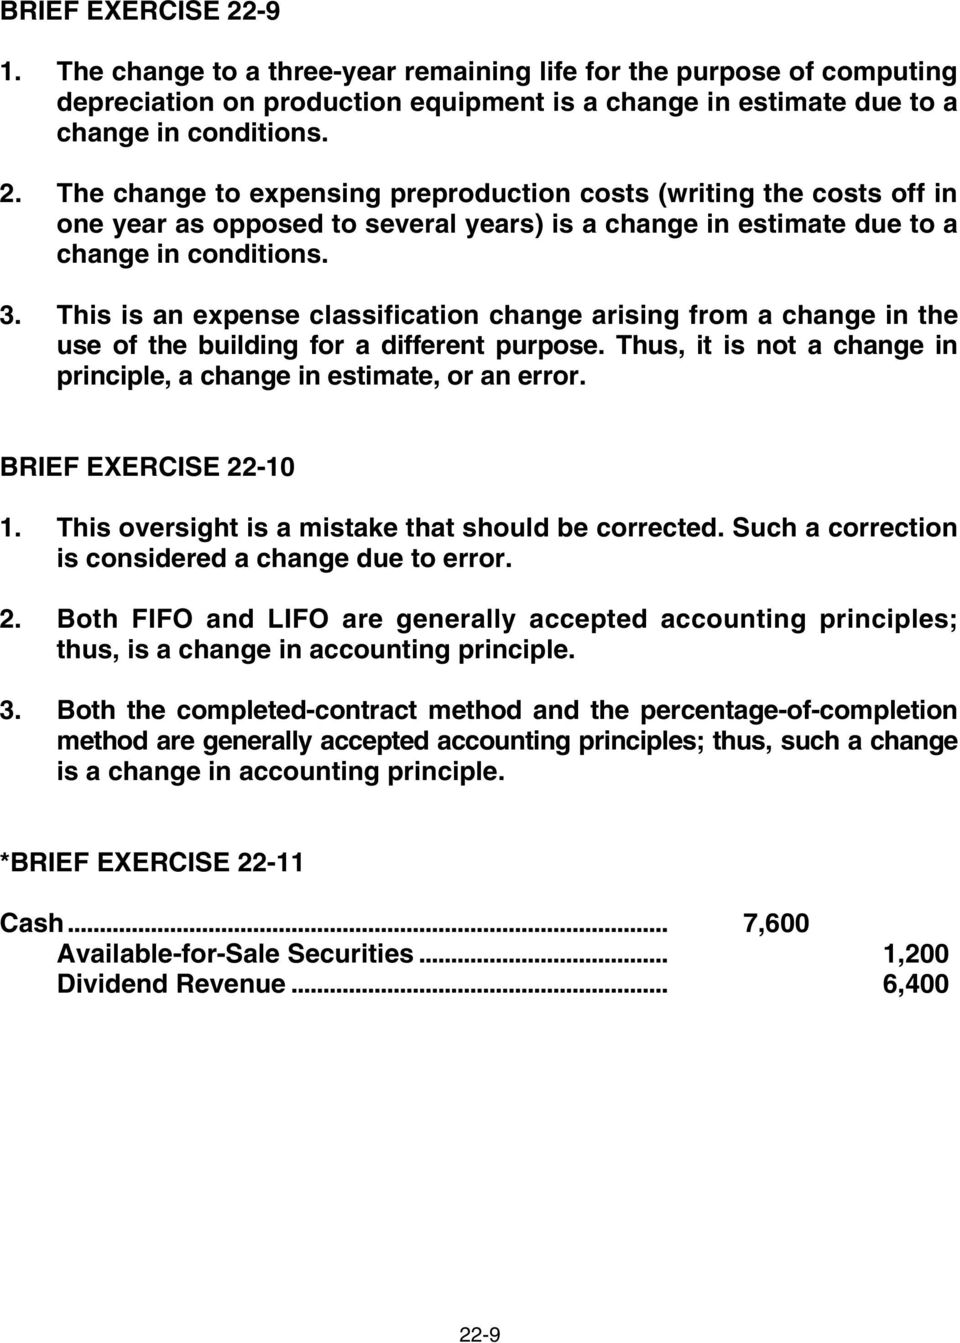 BRIEF EXERCISE 22-10 1. This oversight is a mistake that should be corrected. Such a correction is considered a change due to error. 2. Both FIFO and LIFO are generally accepted accounting principles; thus, is a change in accounting principle.